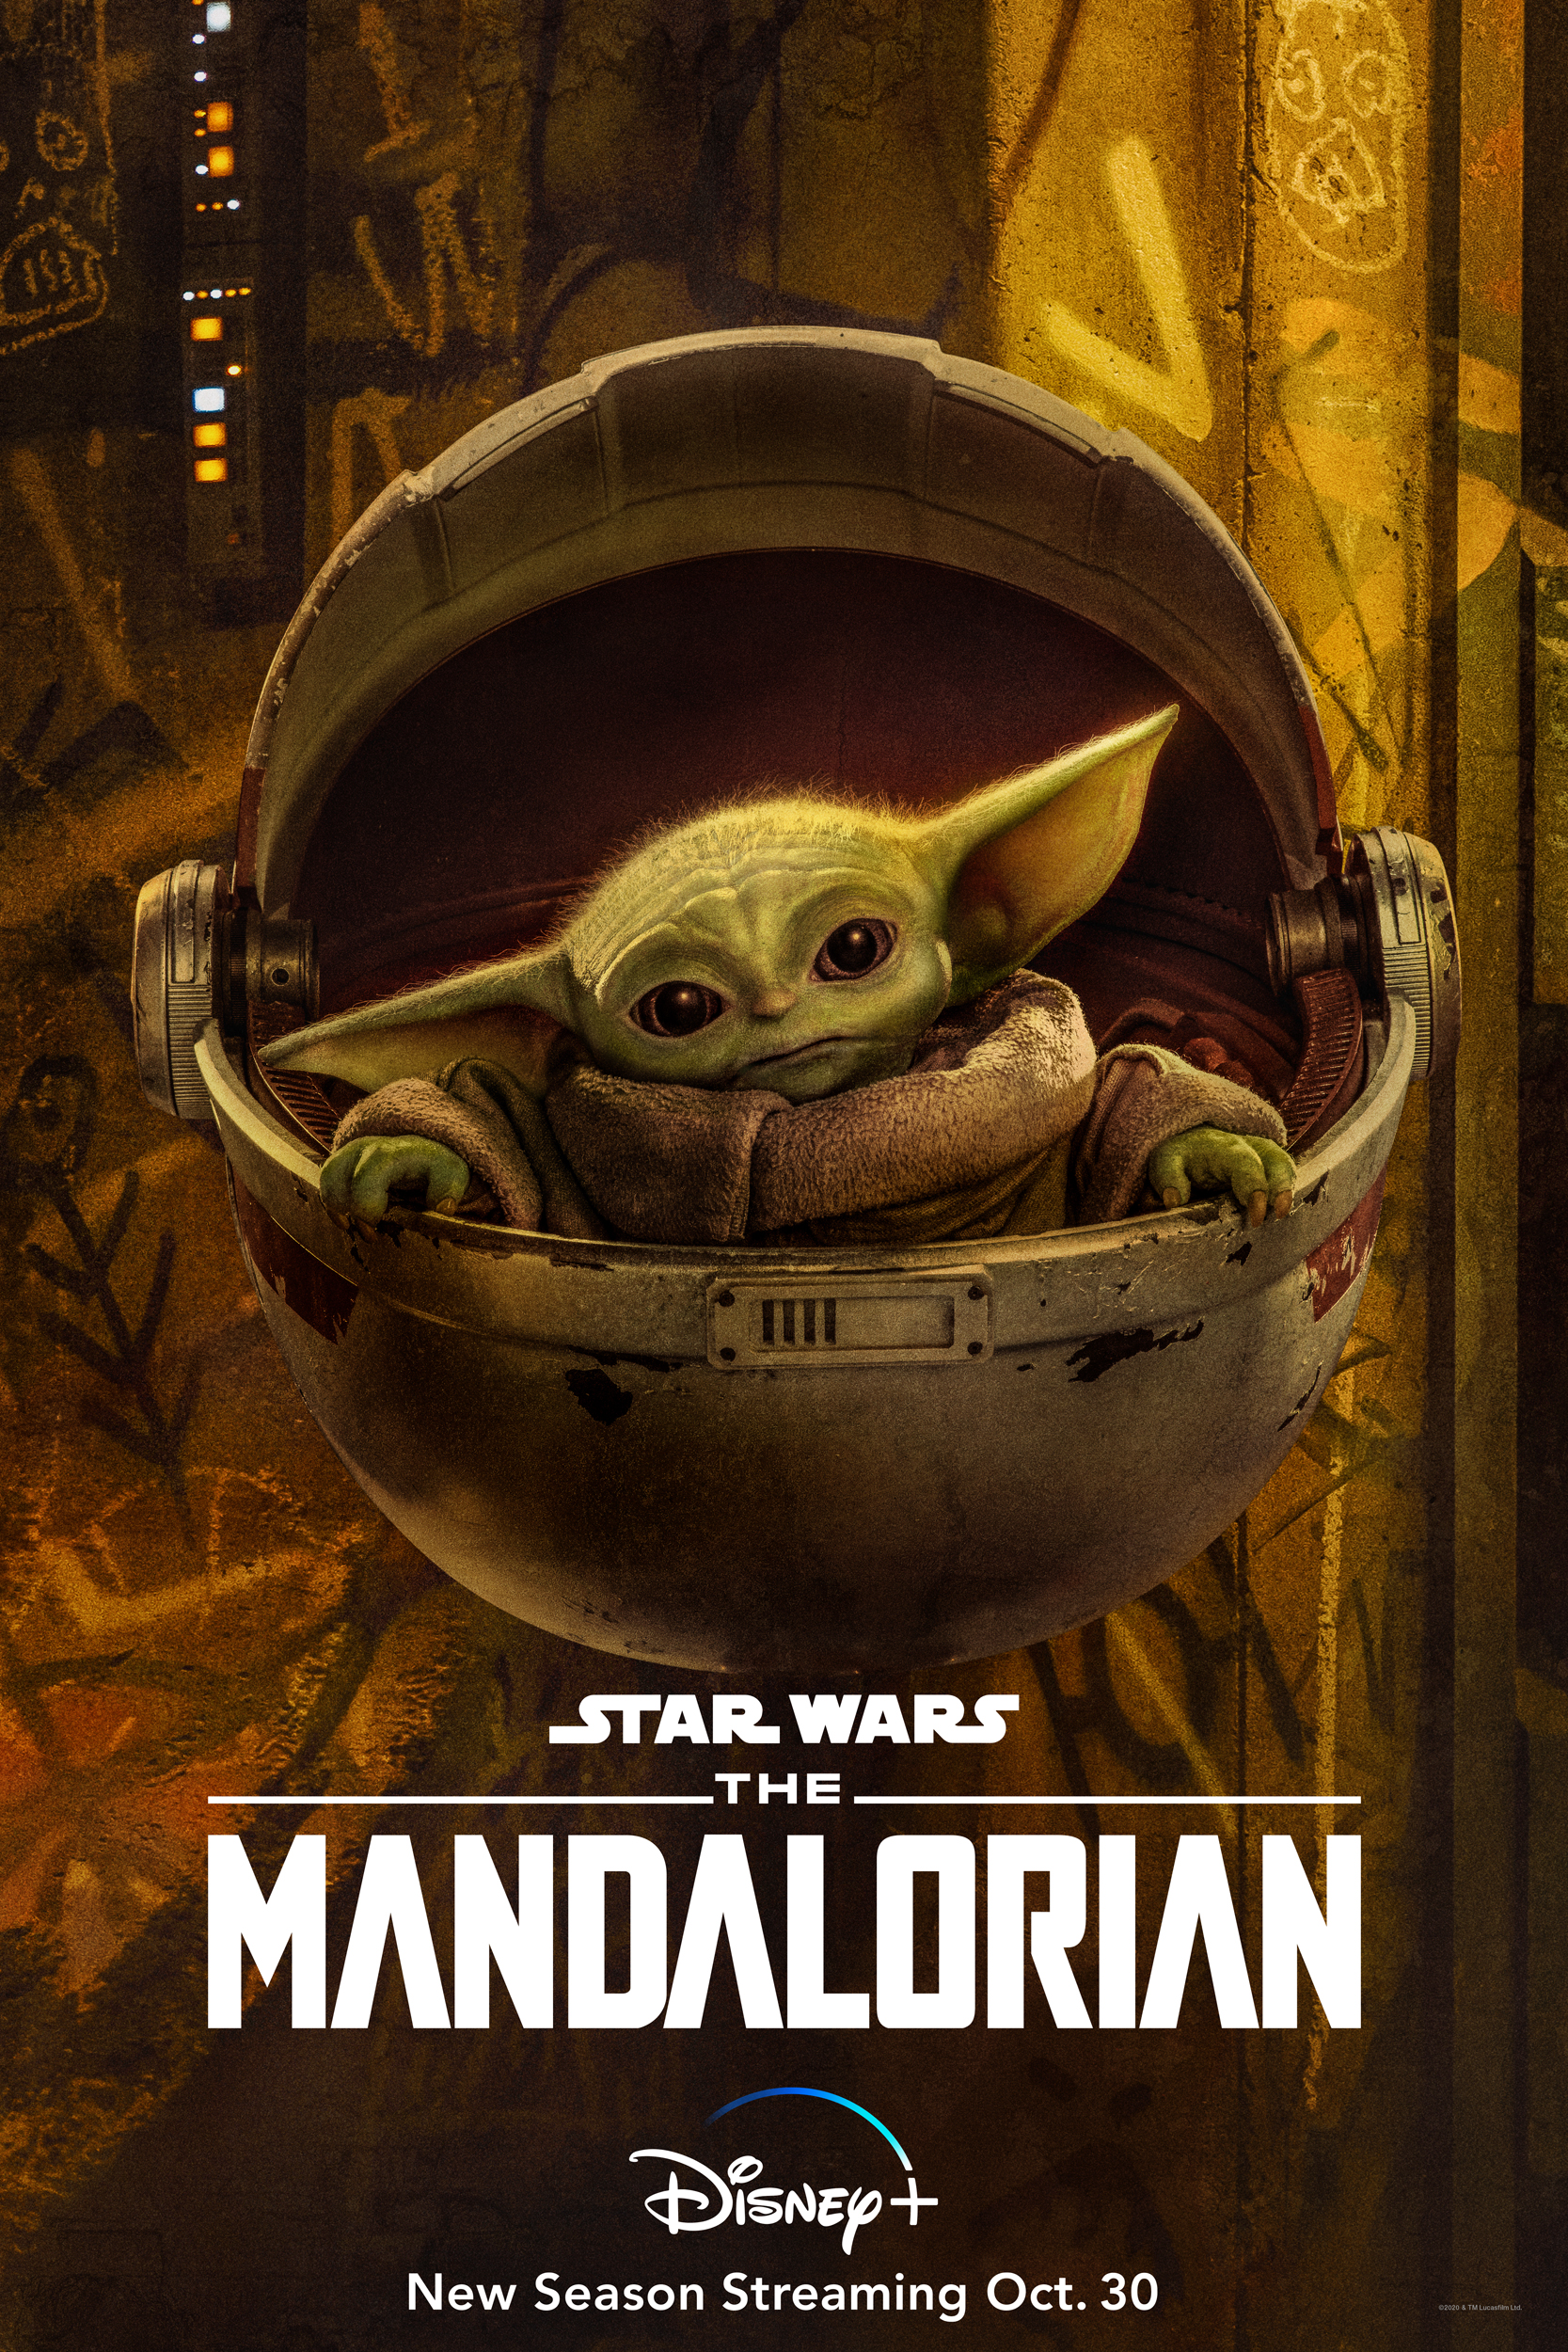 The Mandalorian Season 2 Character Posters Launched